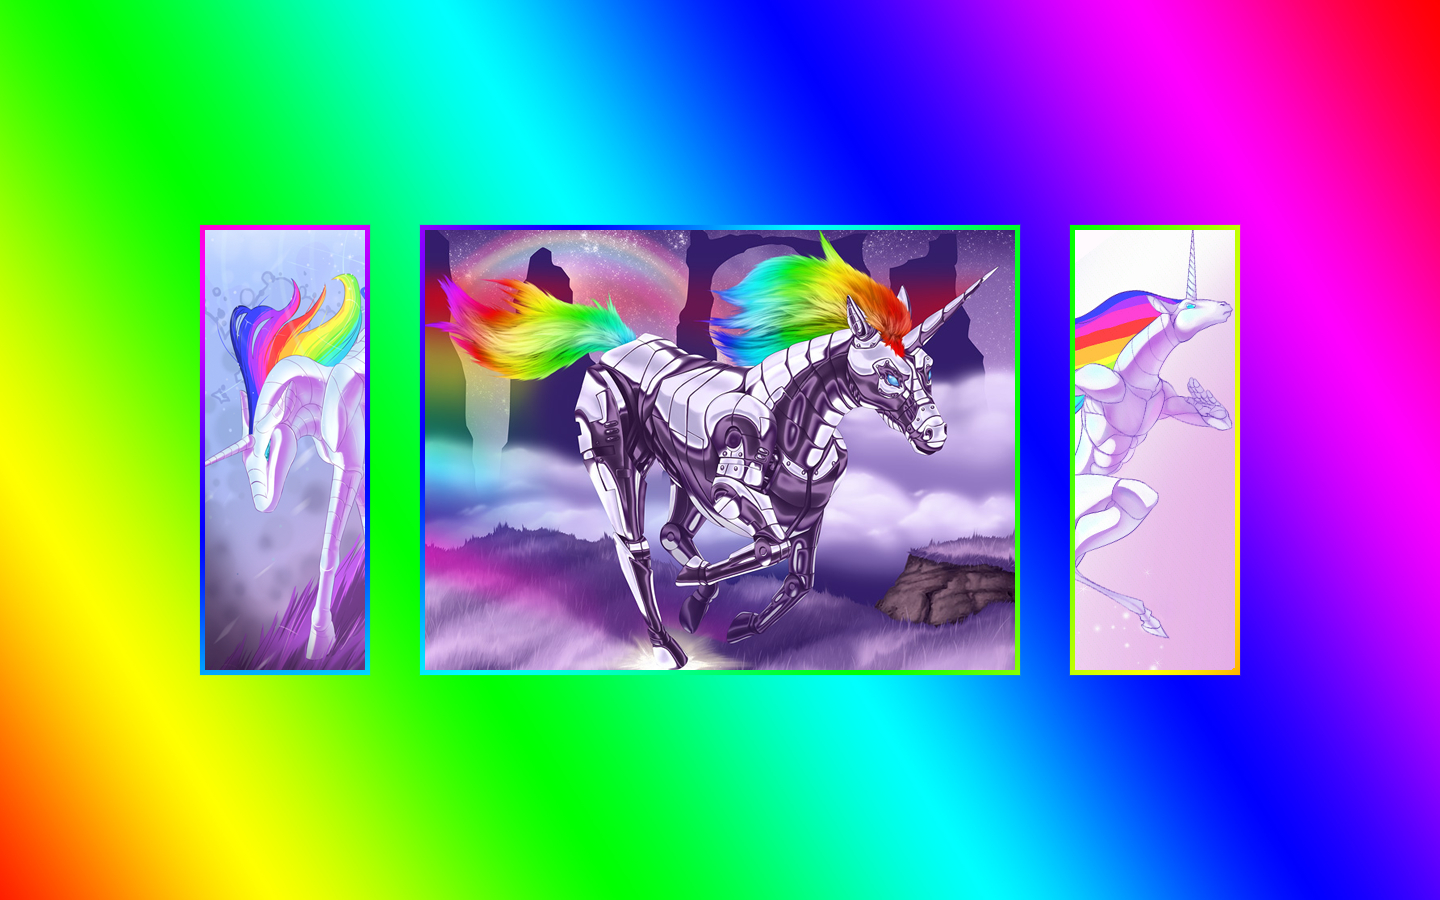 robot unicorn attack rainbows HD Wallpaper